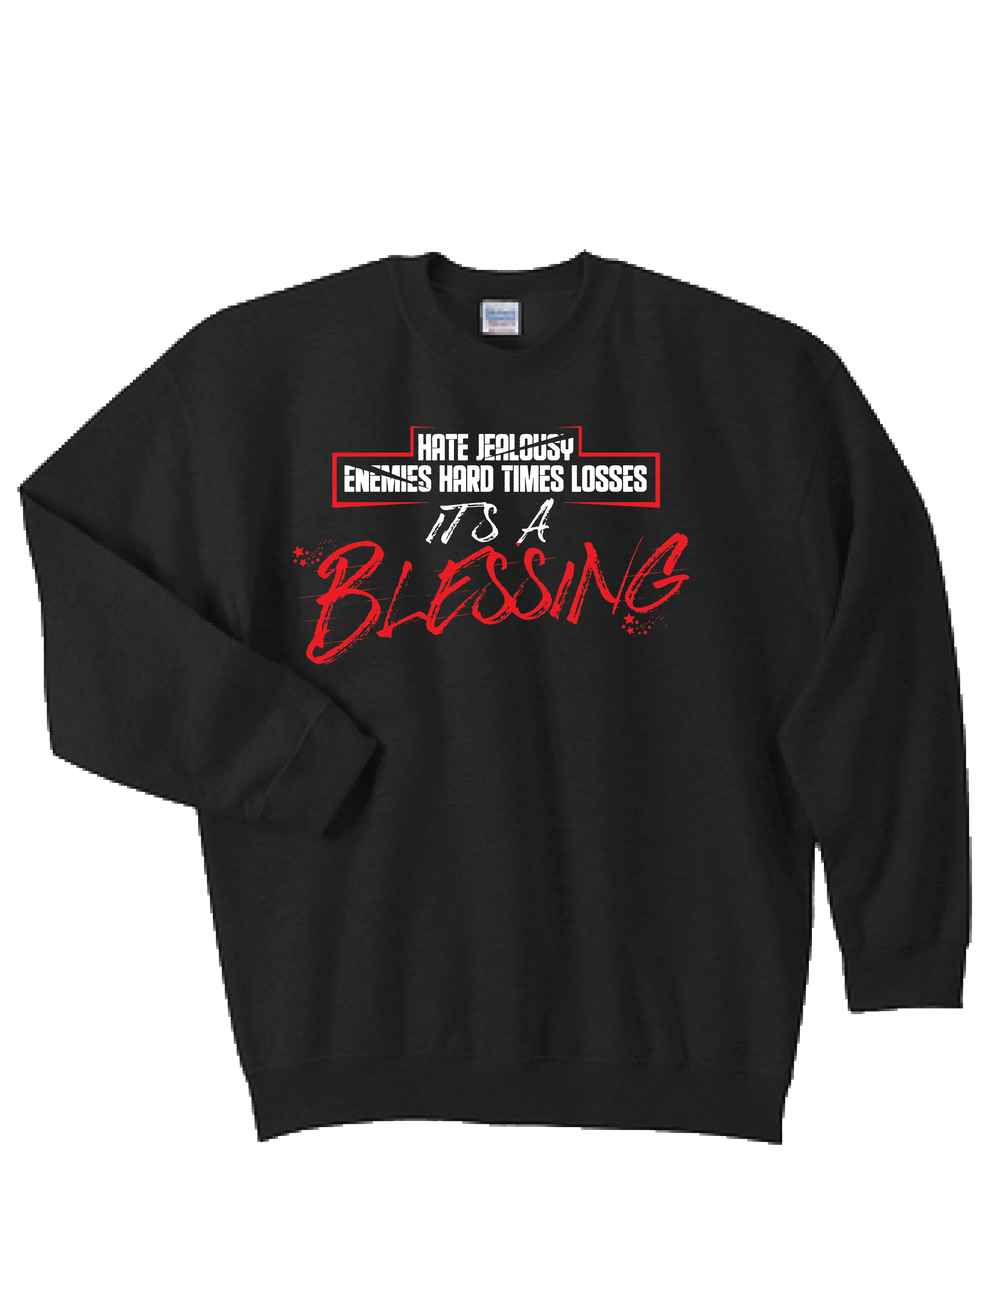 It's A Blessing 🙏🏾 (Sweater)